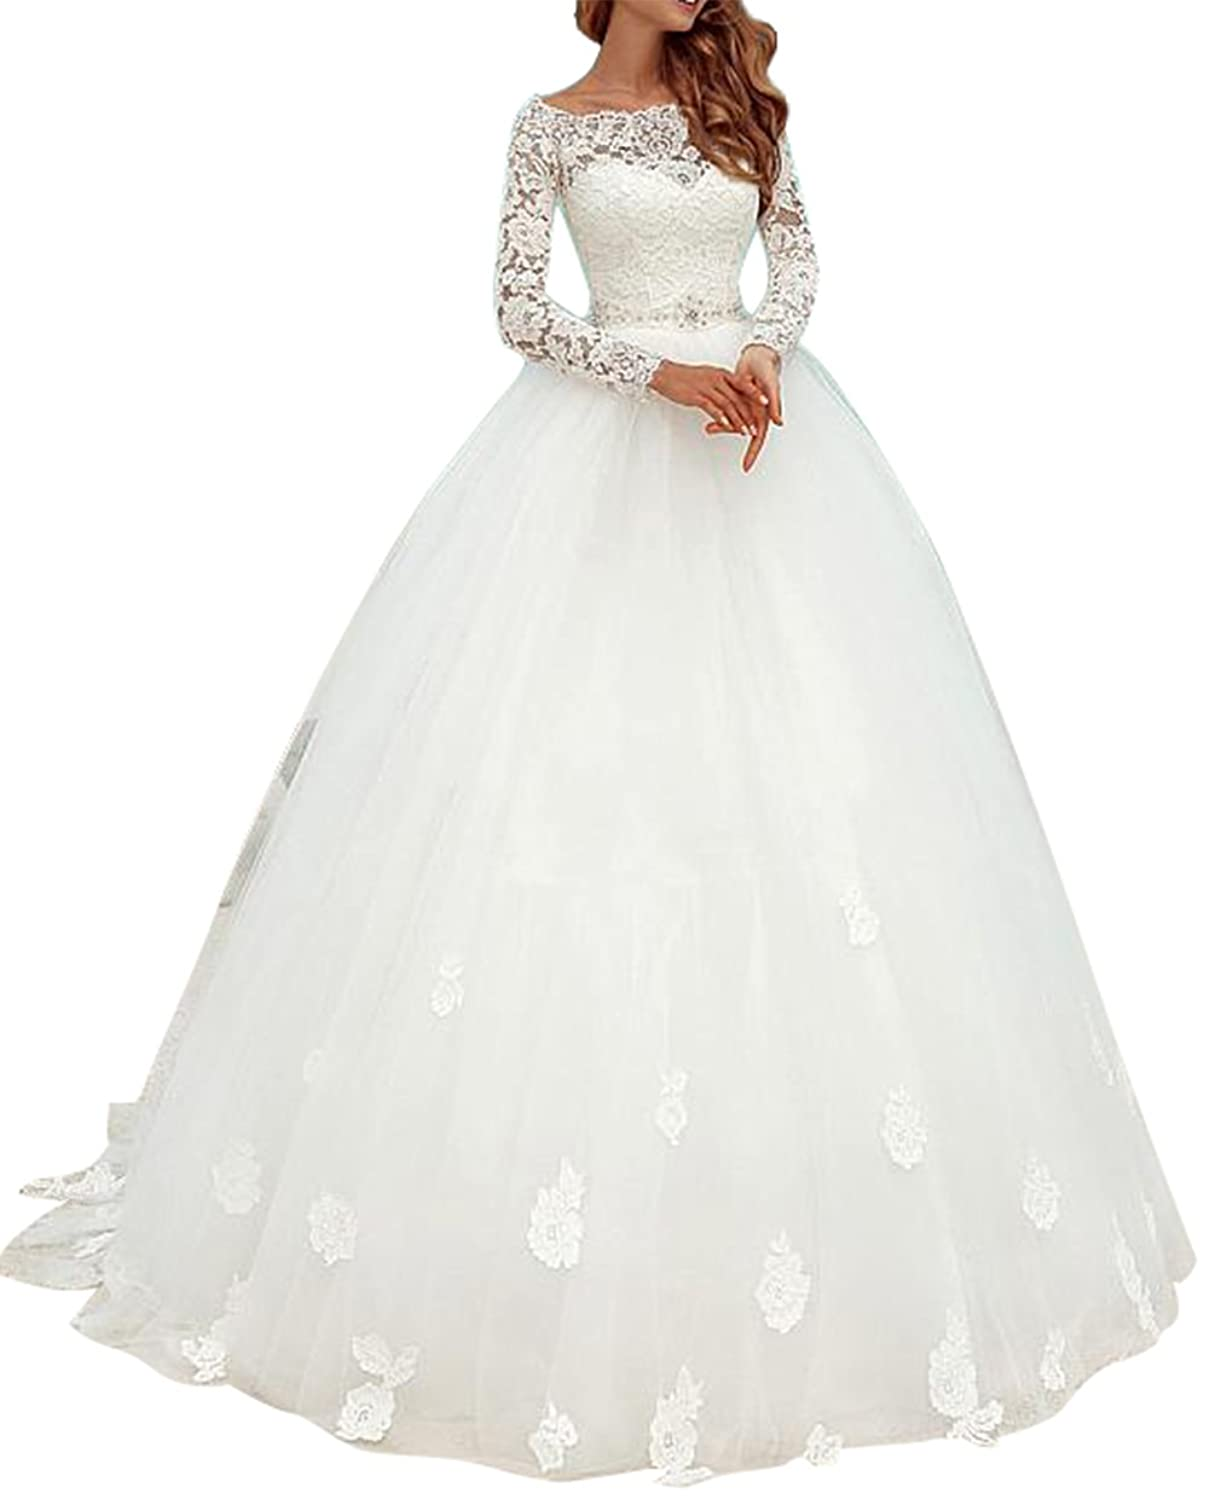 35e679a22fc Features  neckline  Bateau Neck   Train  Sweep Trian  Silhouette  Ball Gown   Back Design  Button Back Occasion   wedding